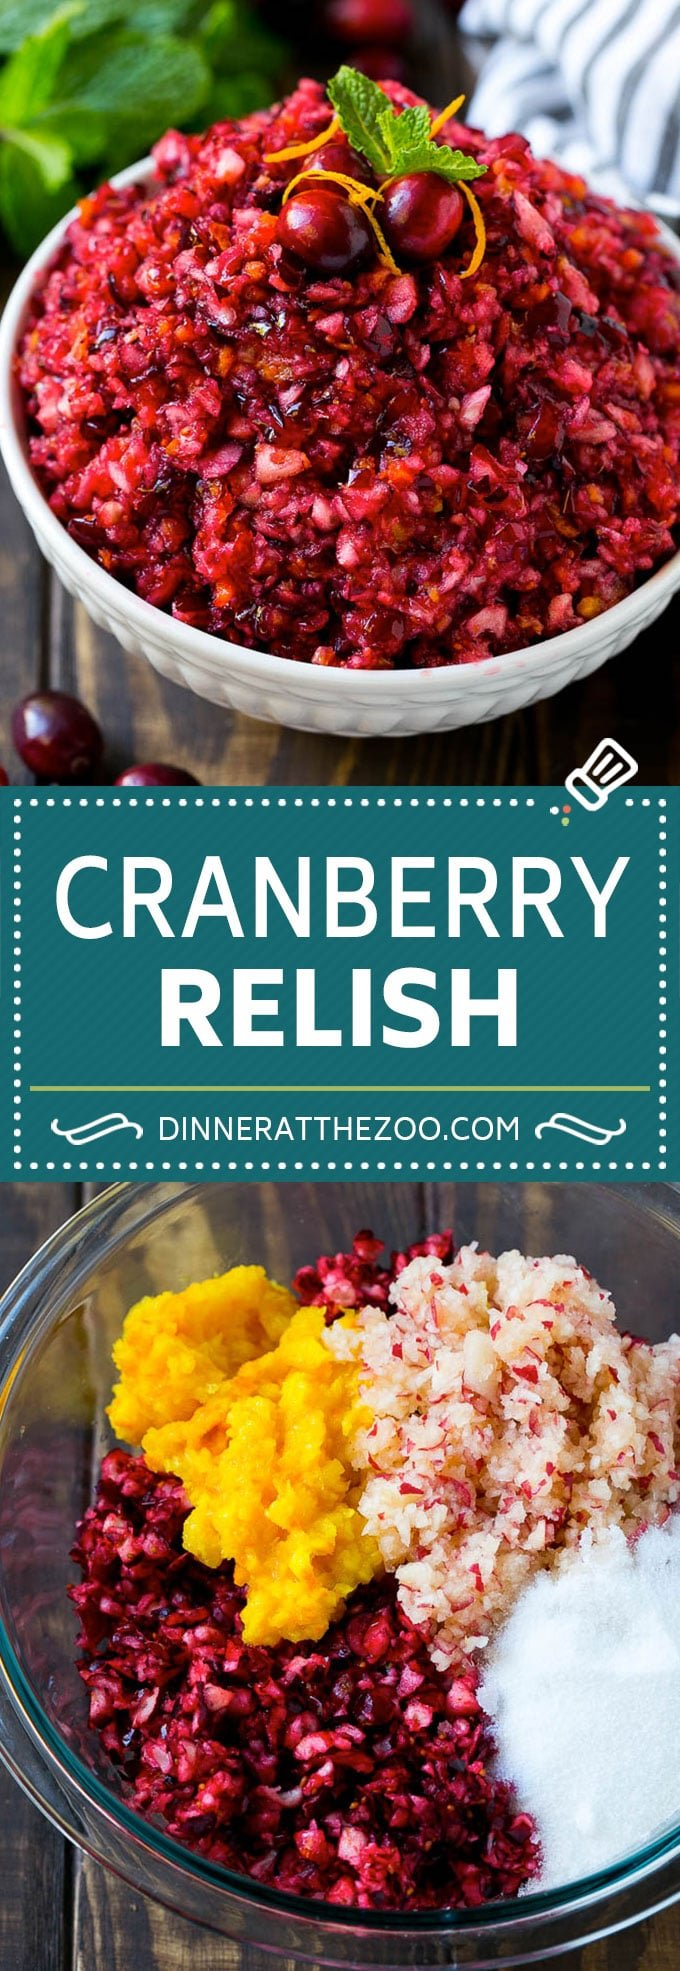 Cranberry Relish Recipe | Cranberry Sauce | Raw Cranberry Relish #cranberry #relish #sauce #thanksgiving #fall #dinner #dinneratthezoo